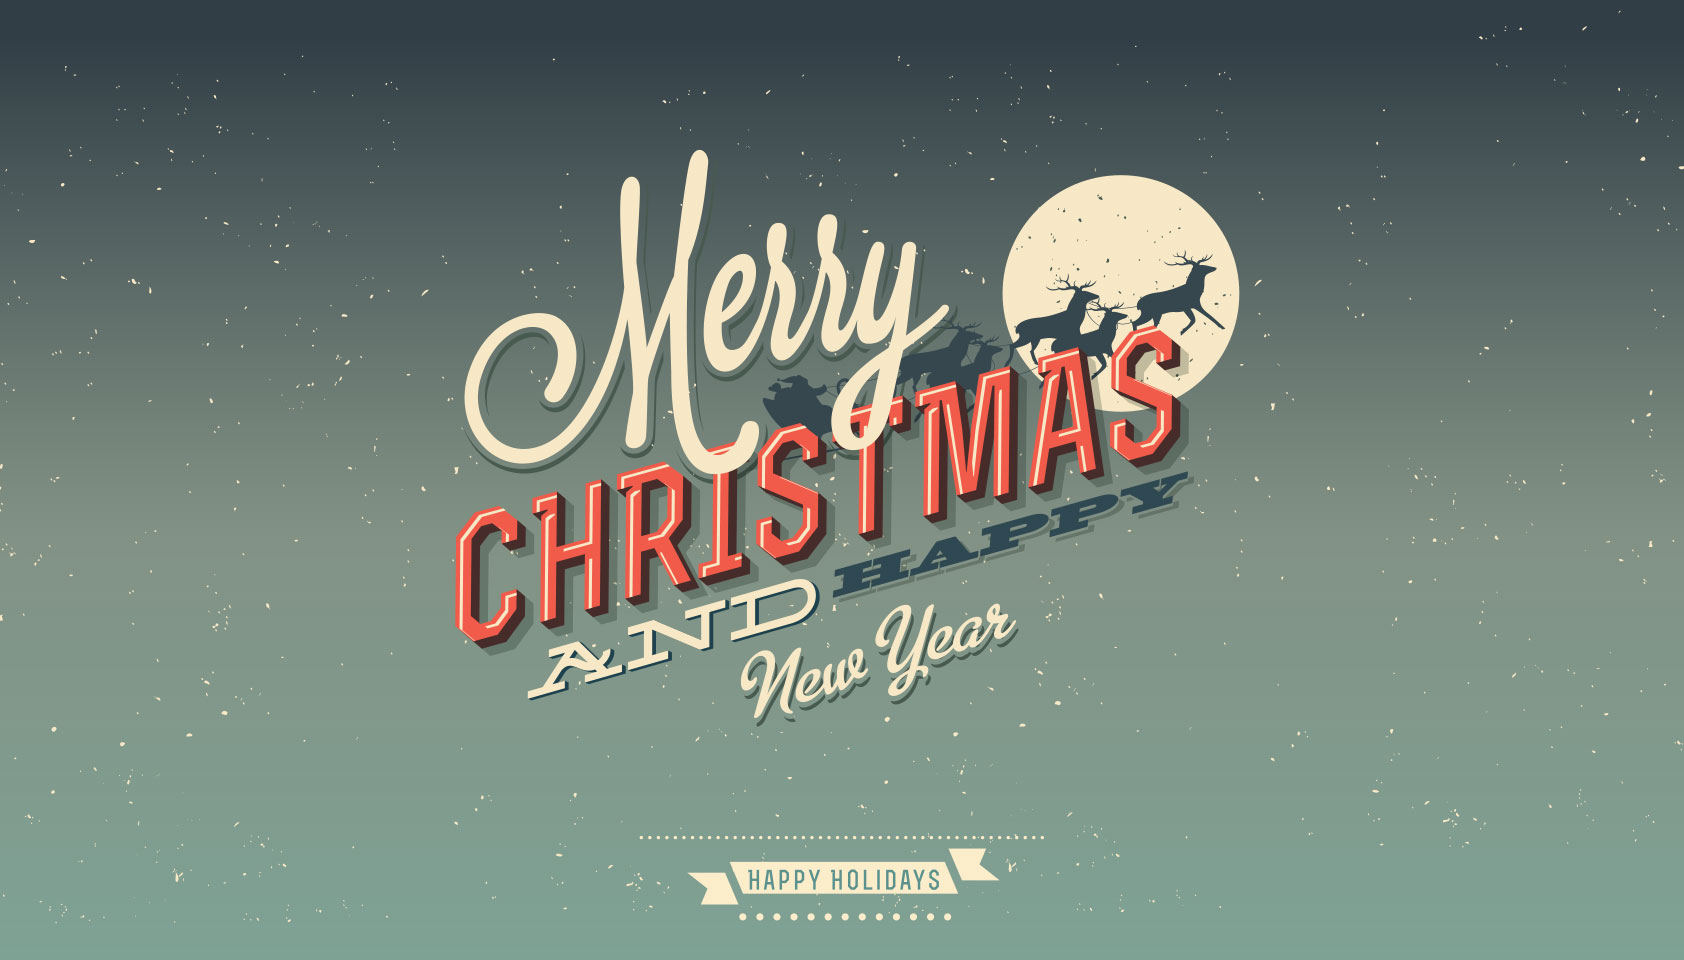 how to send clients some christmas cheer webdesigner depot - Christmas Cards For Clients